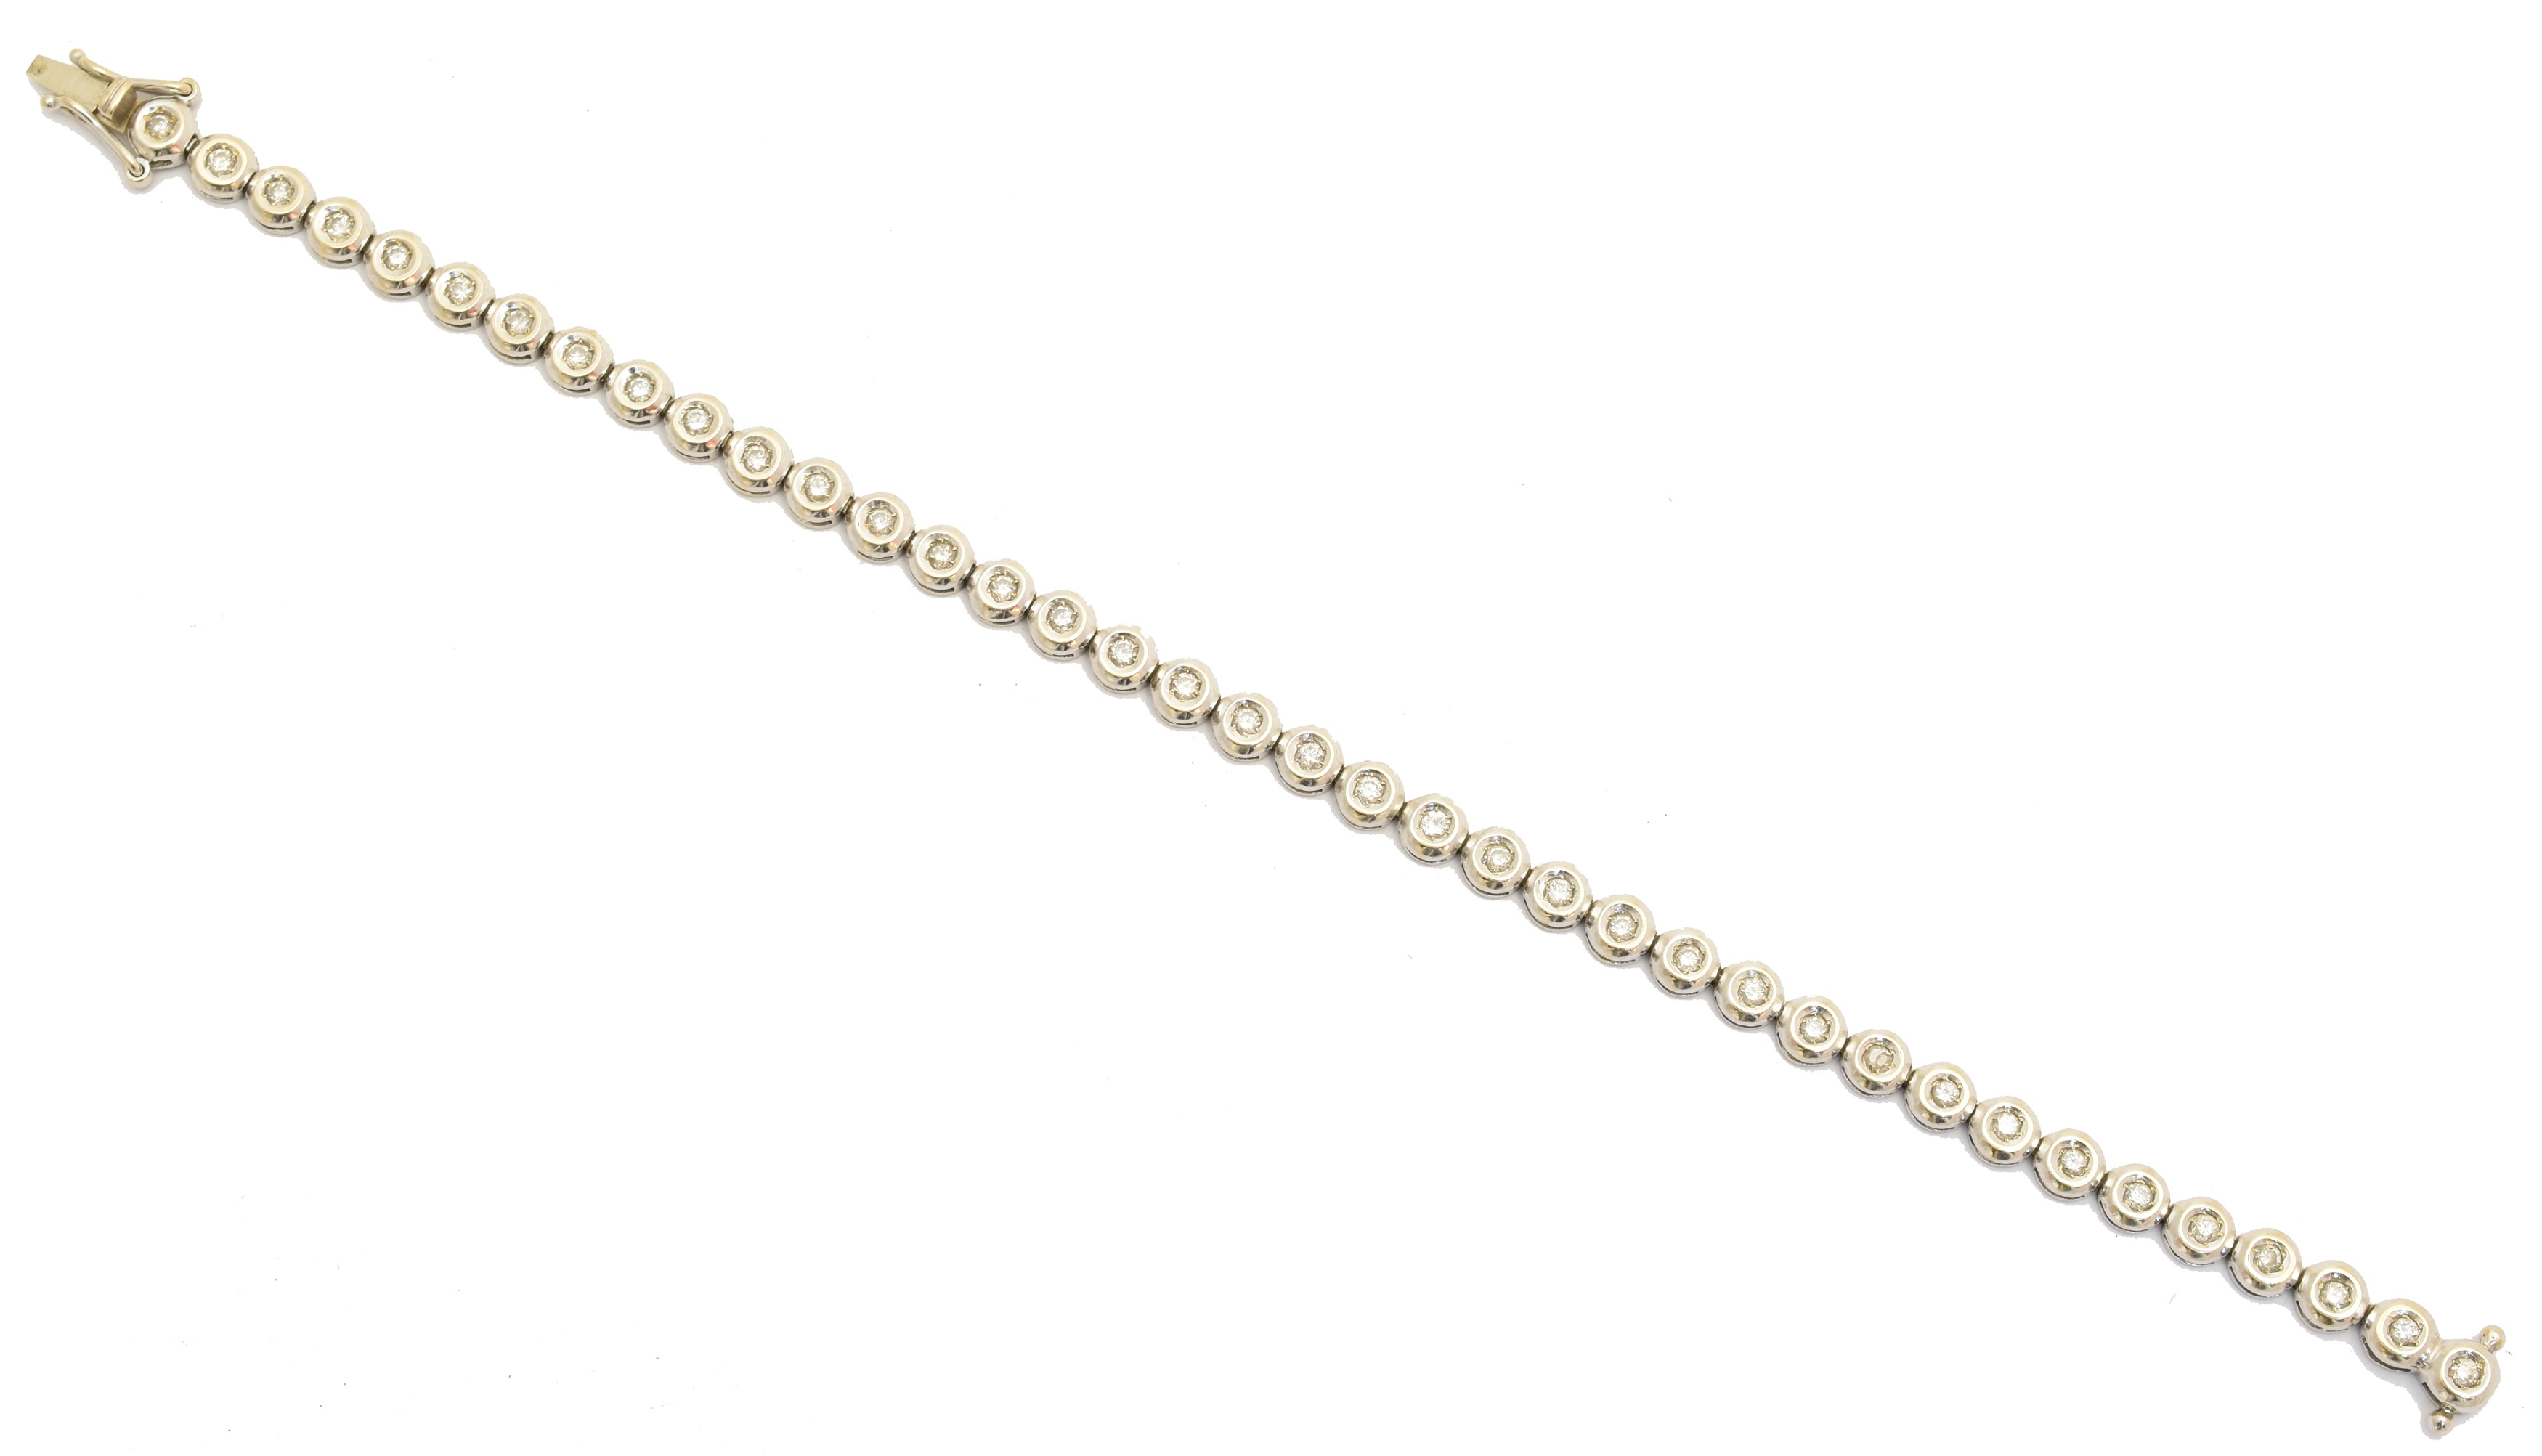 A diamond bracelet, designed as a series of brilliant cut diamond collets, with push piece clasp, total diamond weight 1ct, stamped K18, length 18cm, gross weight 10g.